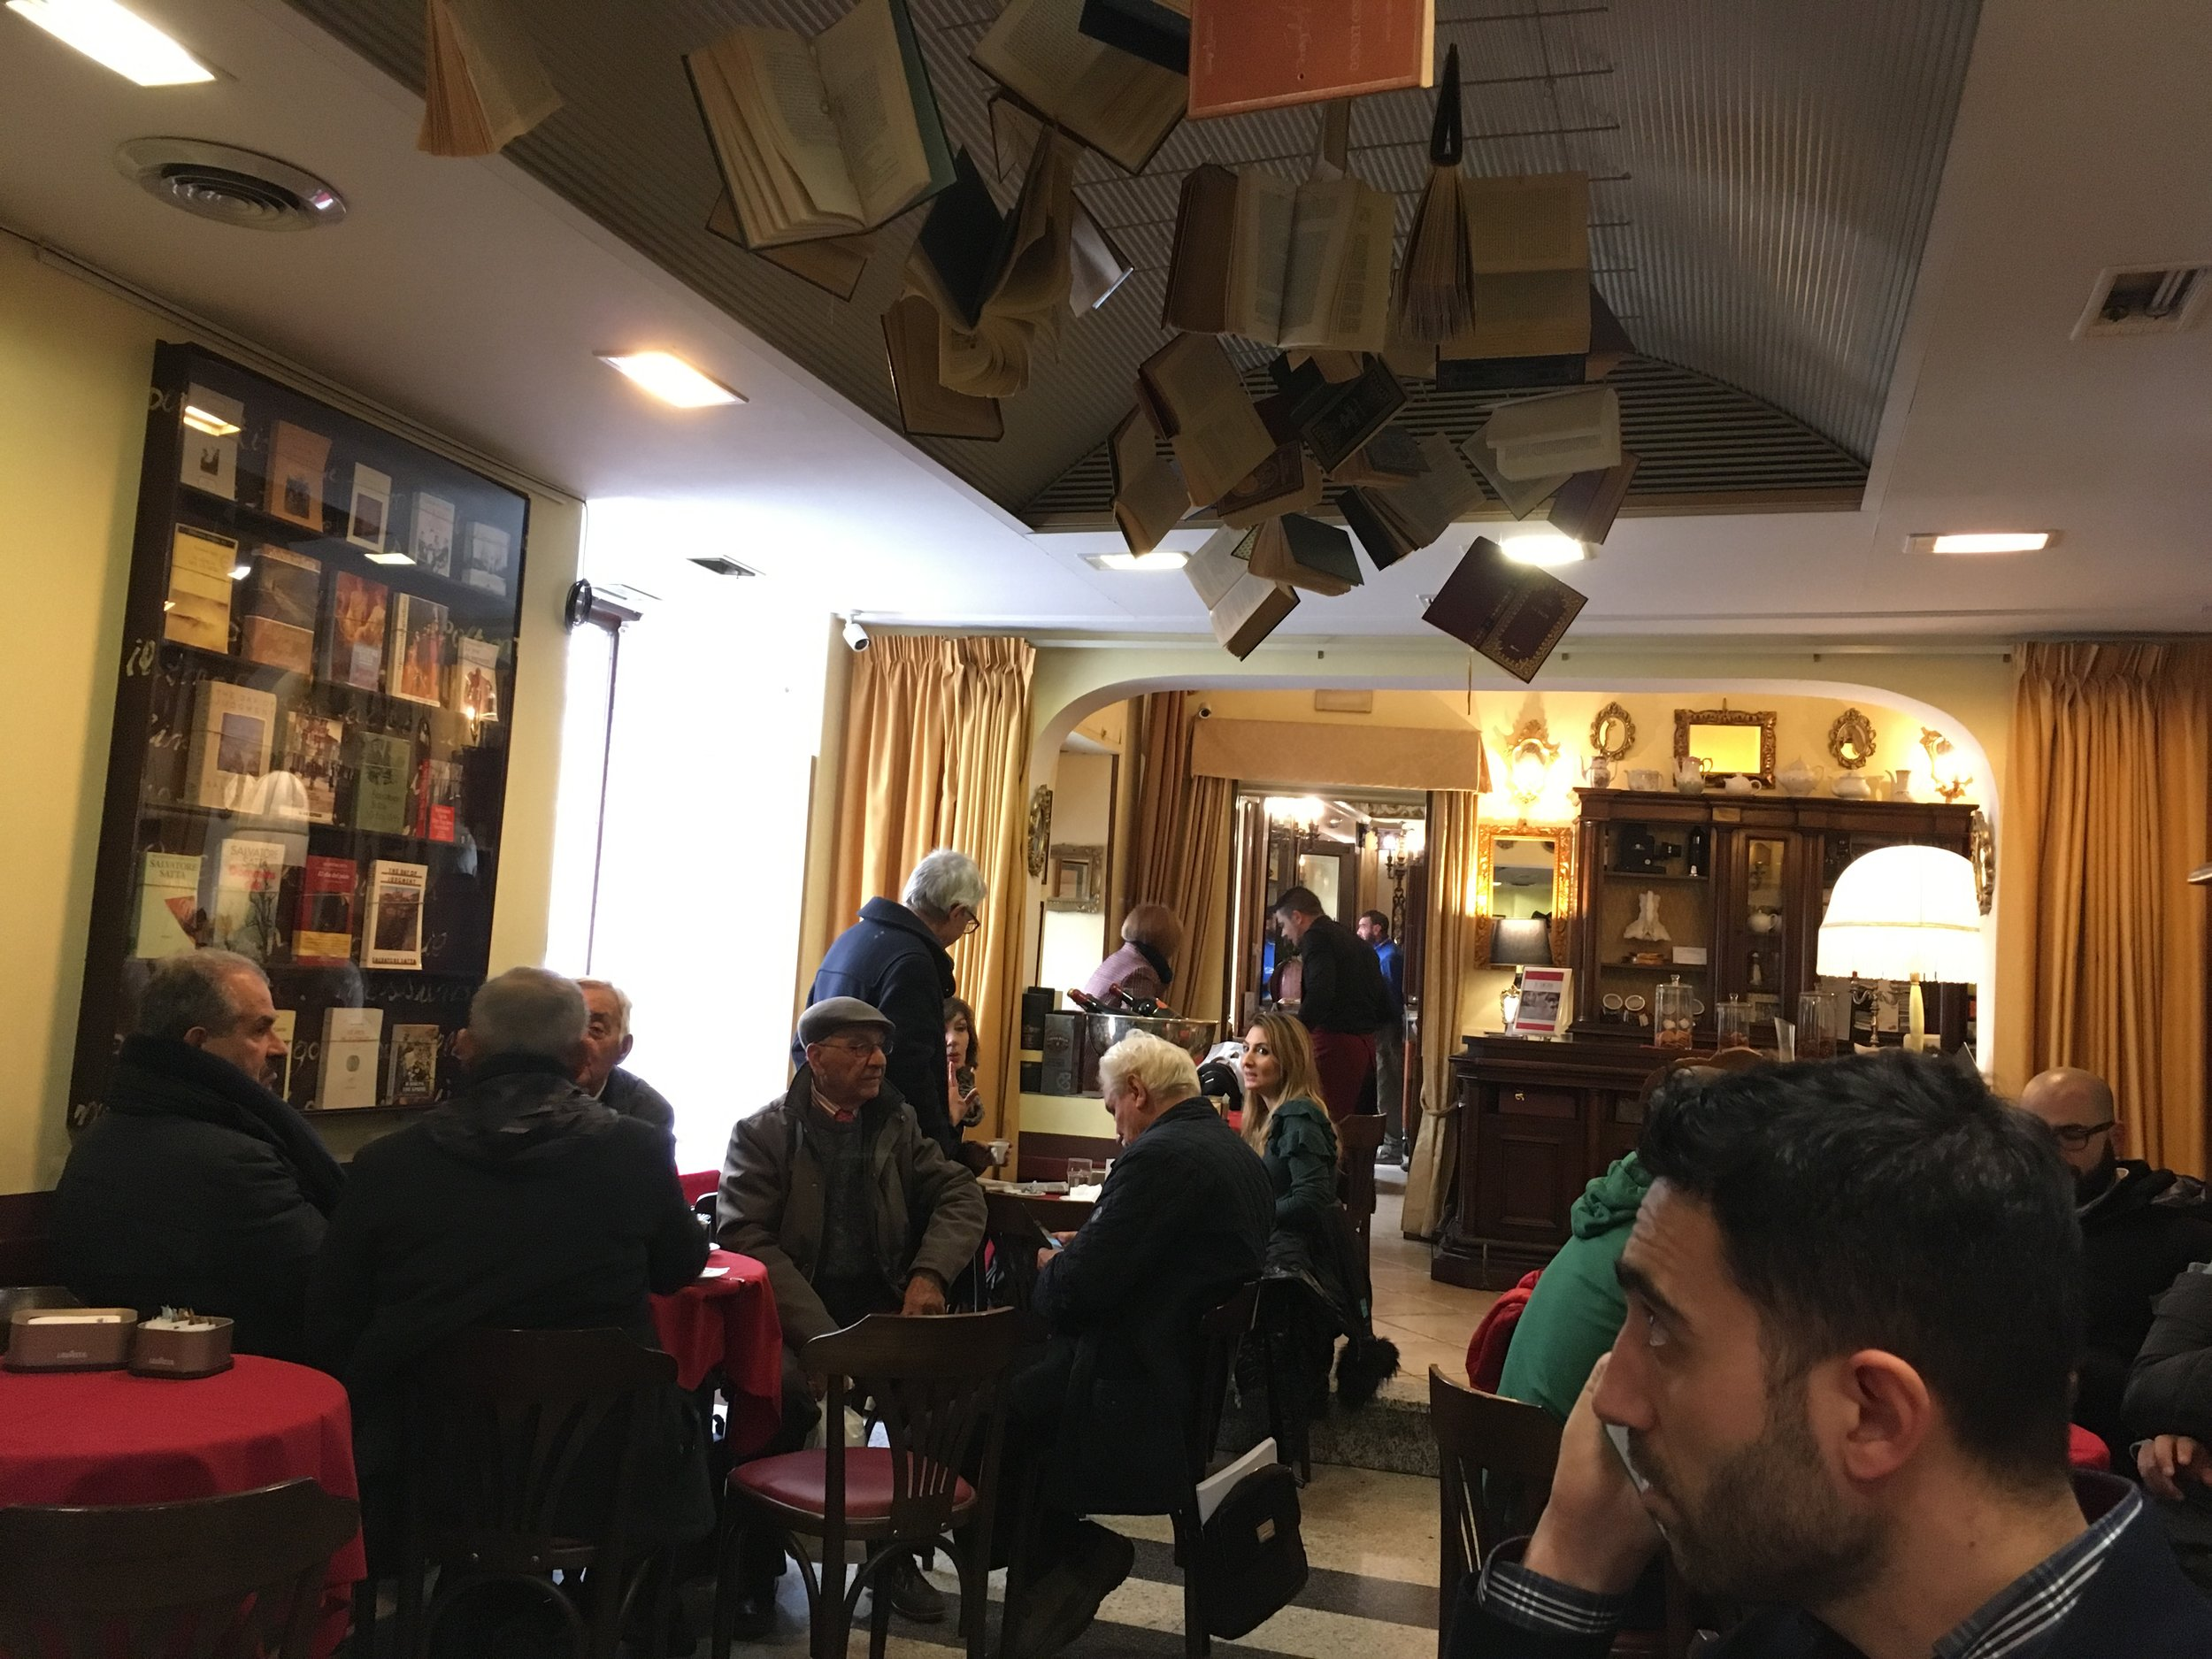 Caffé Tettamanzi today, still bookish